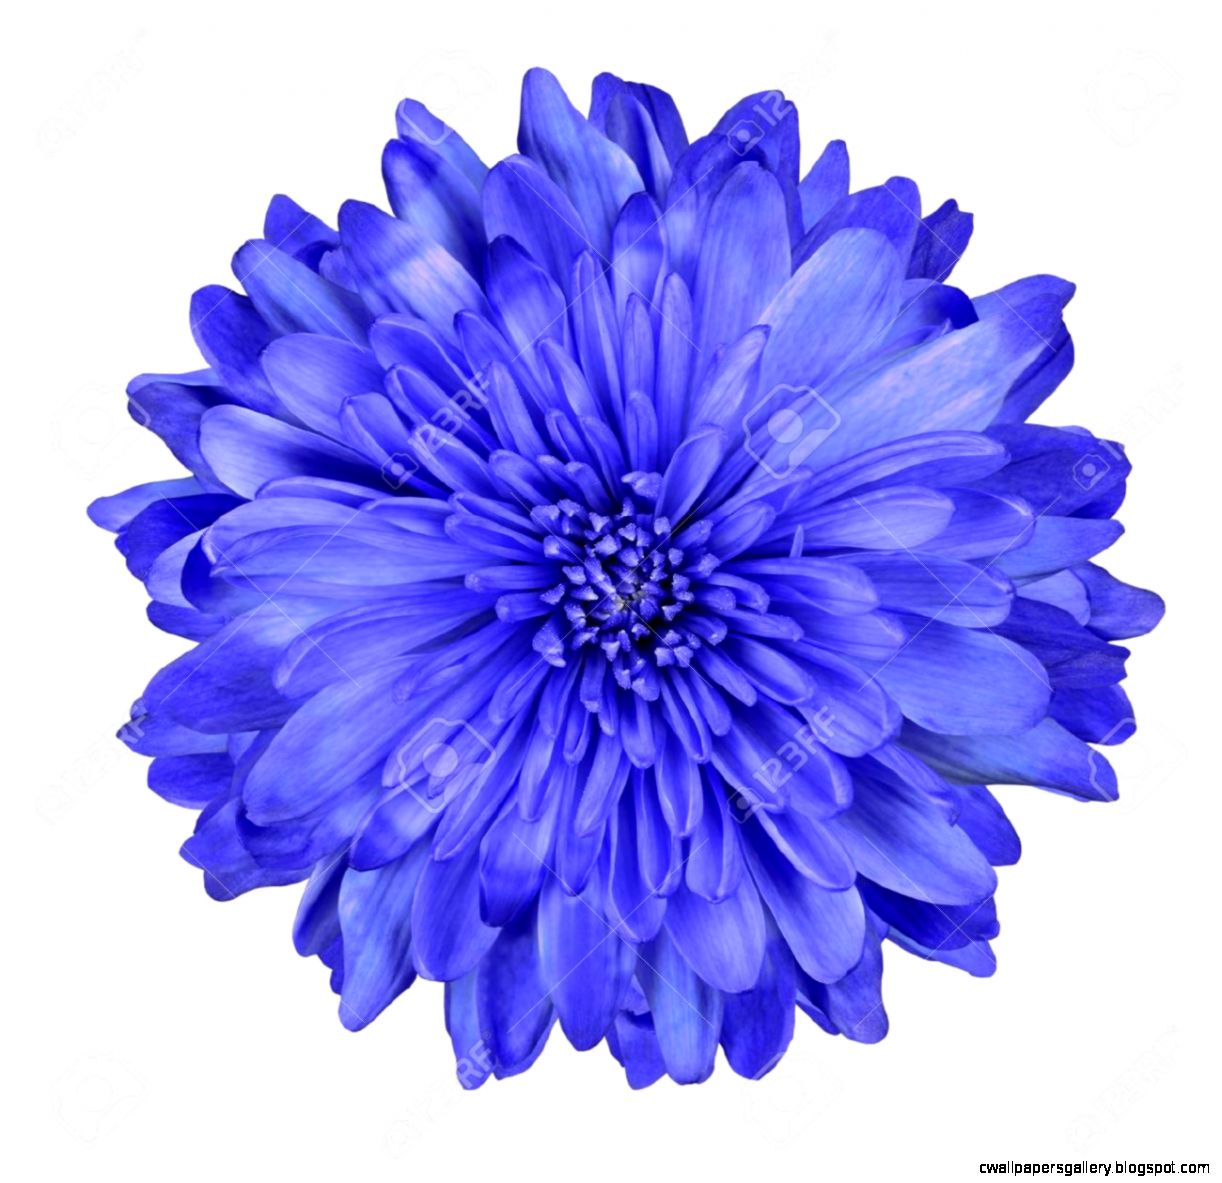 Single Deep Blue Chrysanthemum Flower Isolated Over White